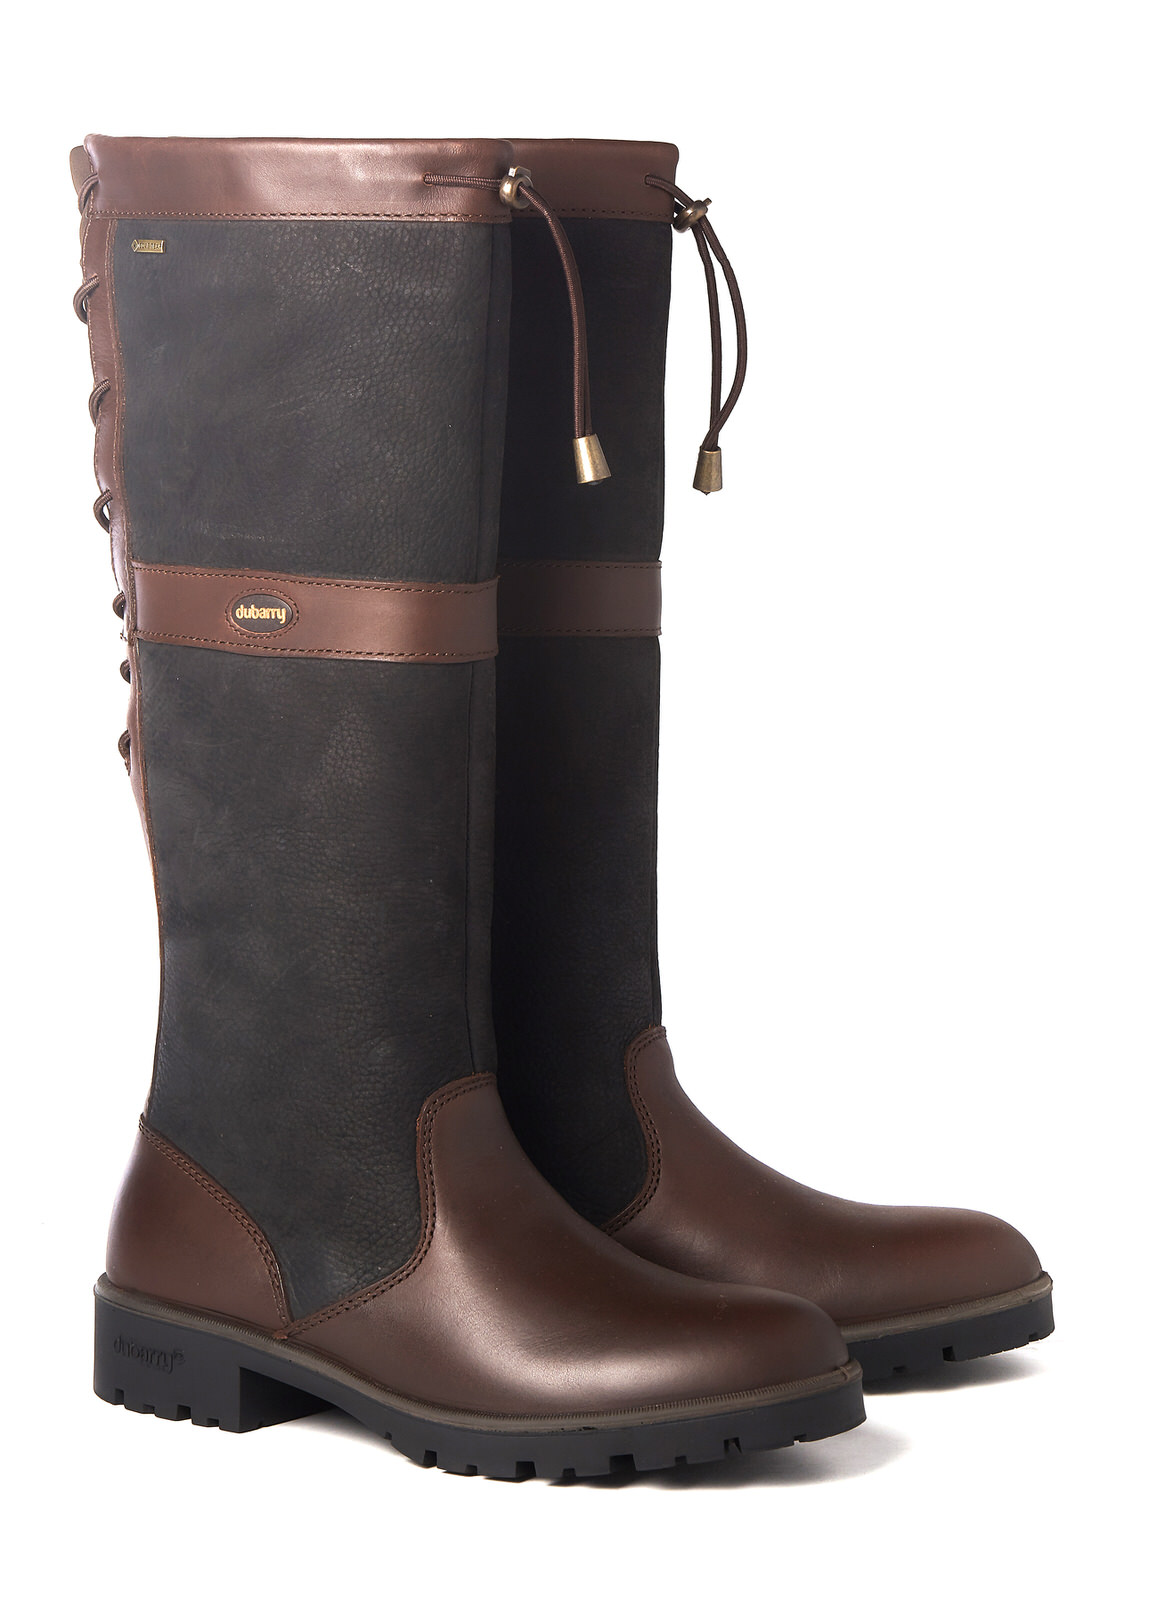 Glanmire_Country_Boot_Black/Brown_Image_1